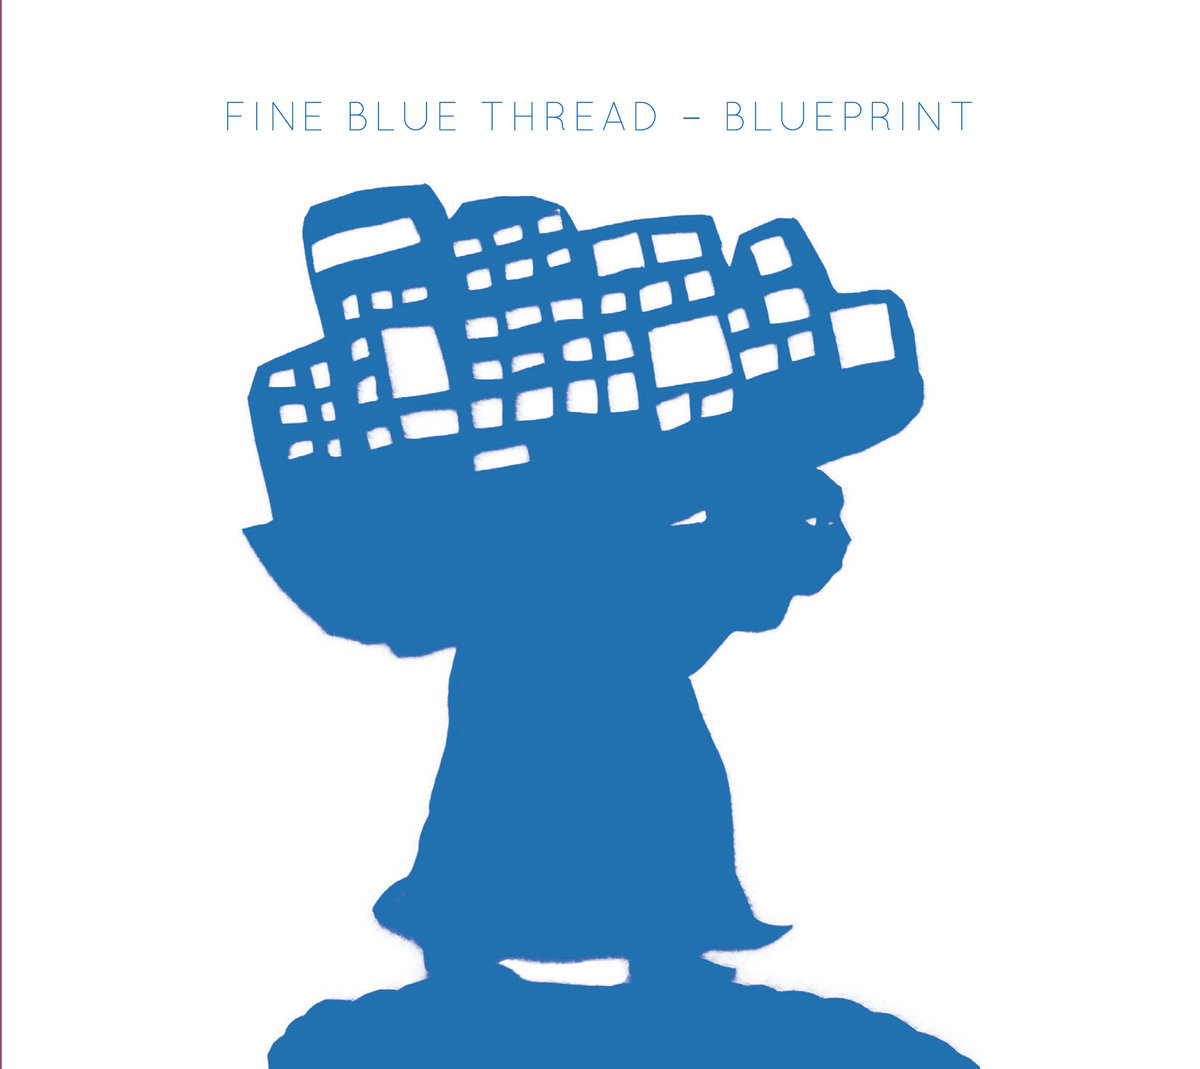 Blueprint fine blue thread blueprint malvernweather Image collections